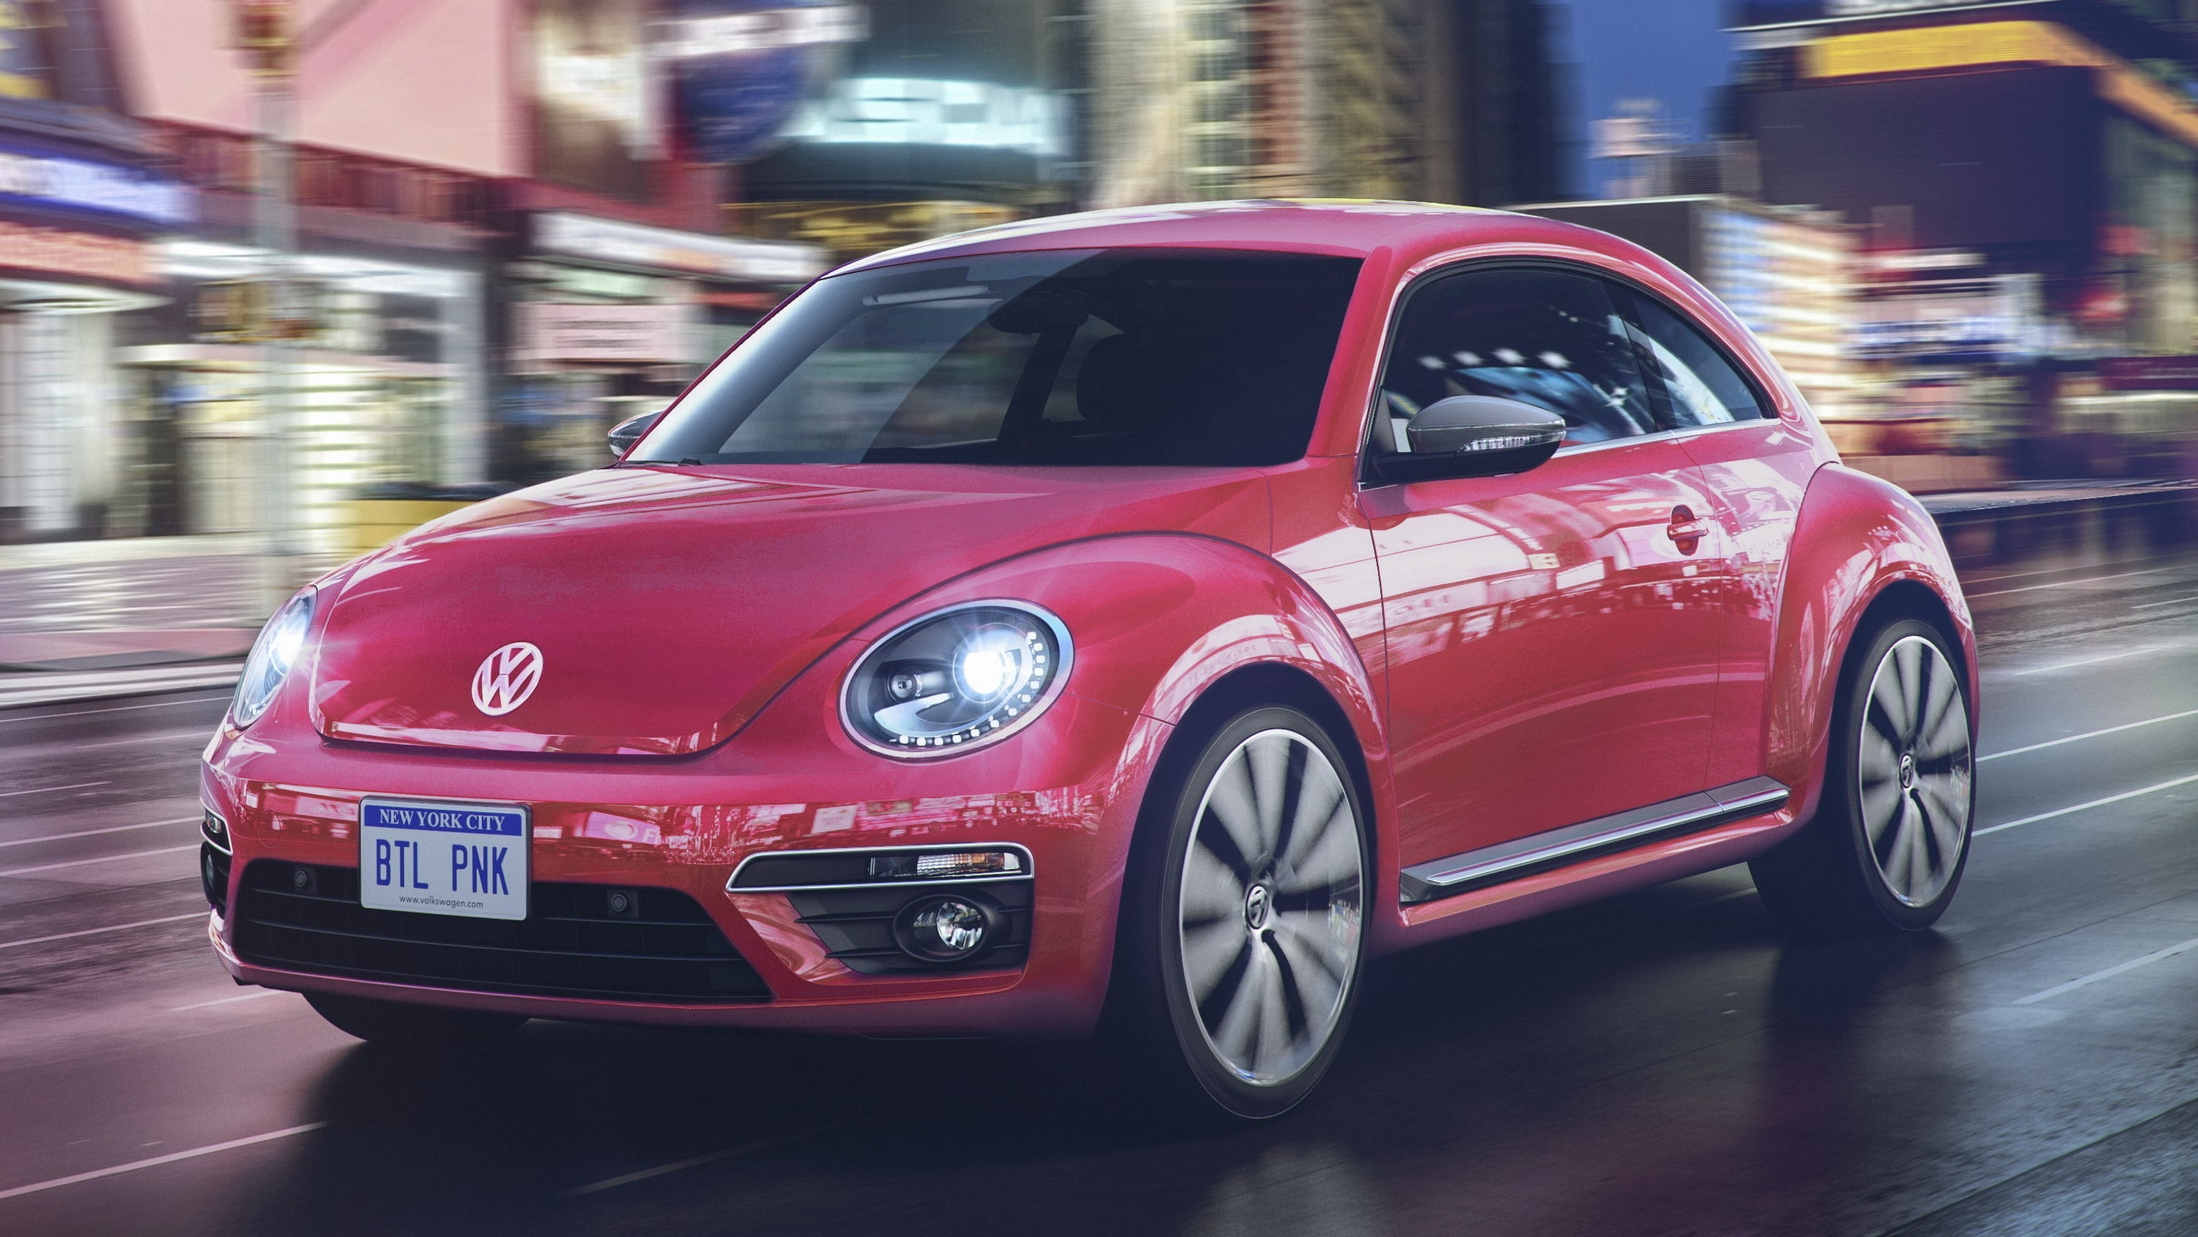 2017 Volkswagen Pinkbeetle Top Speed